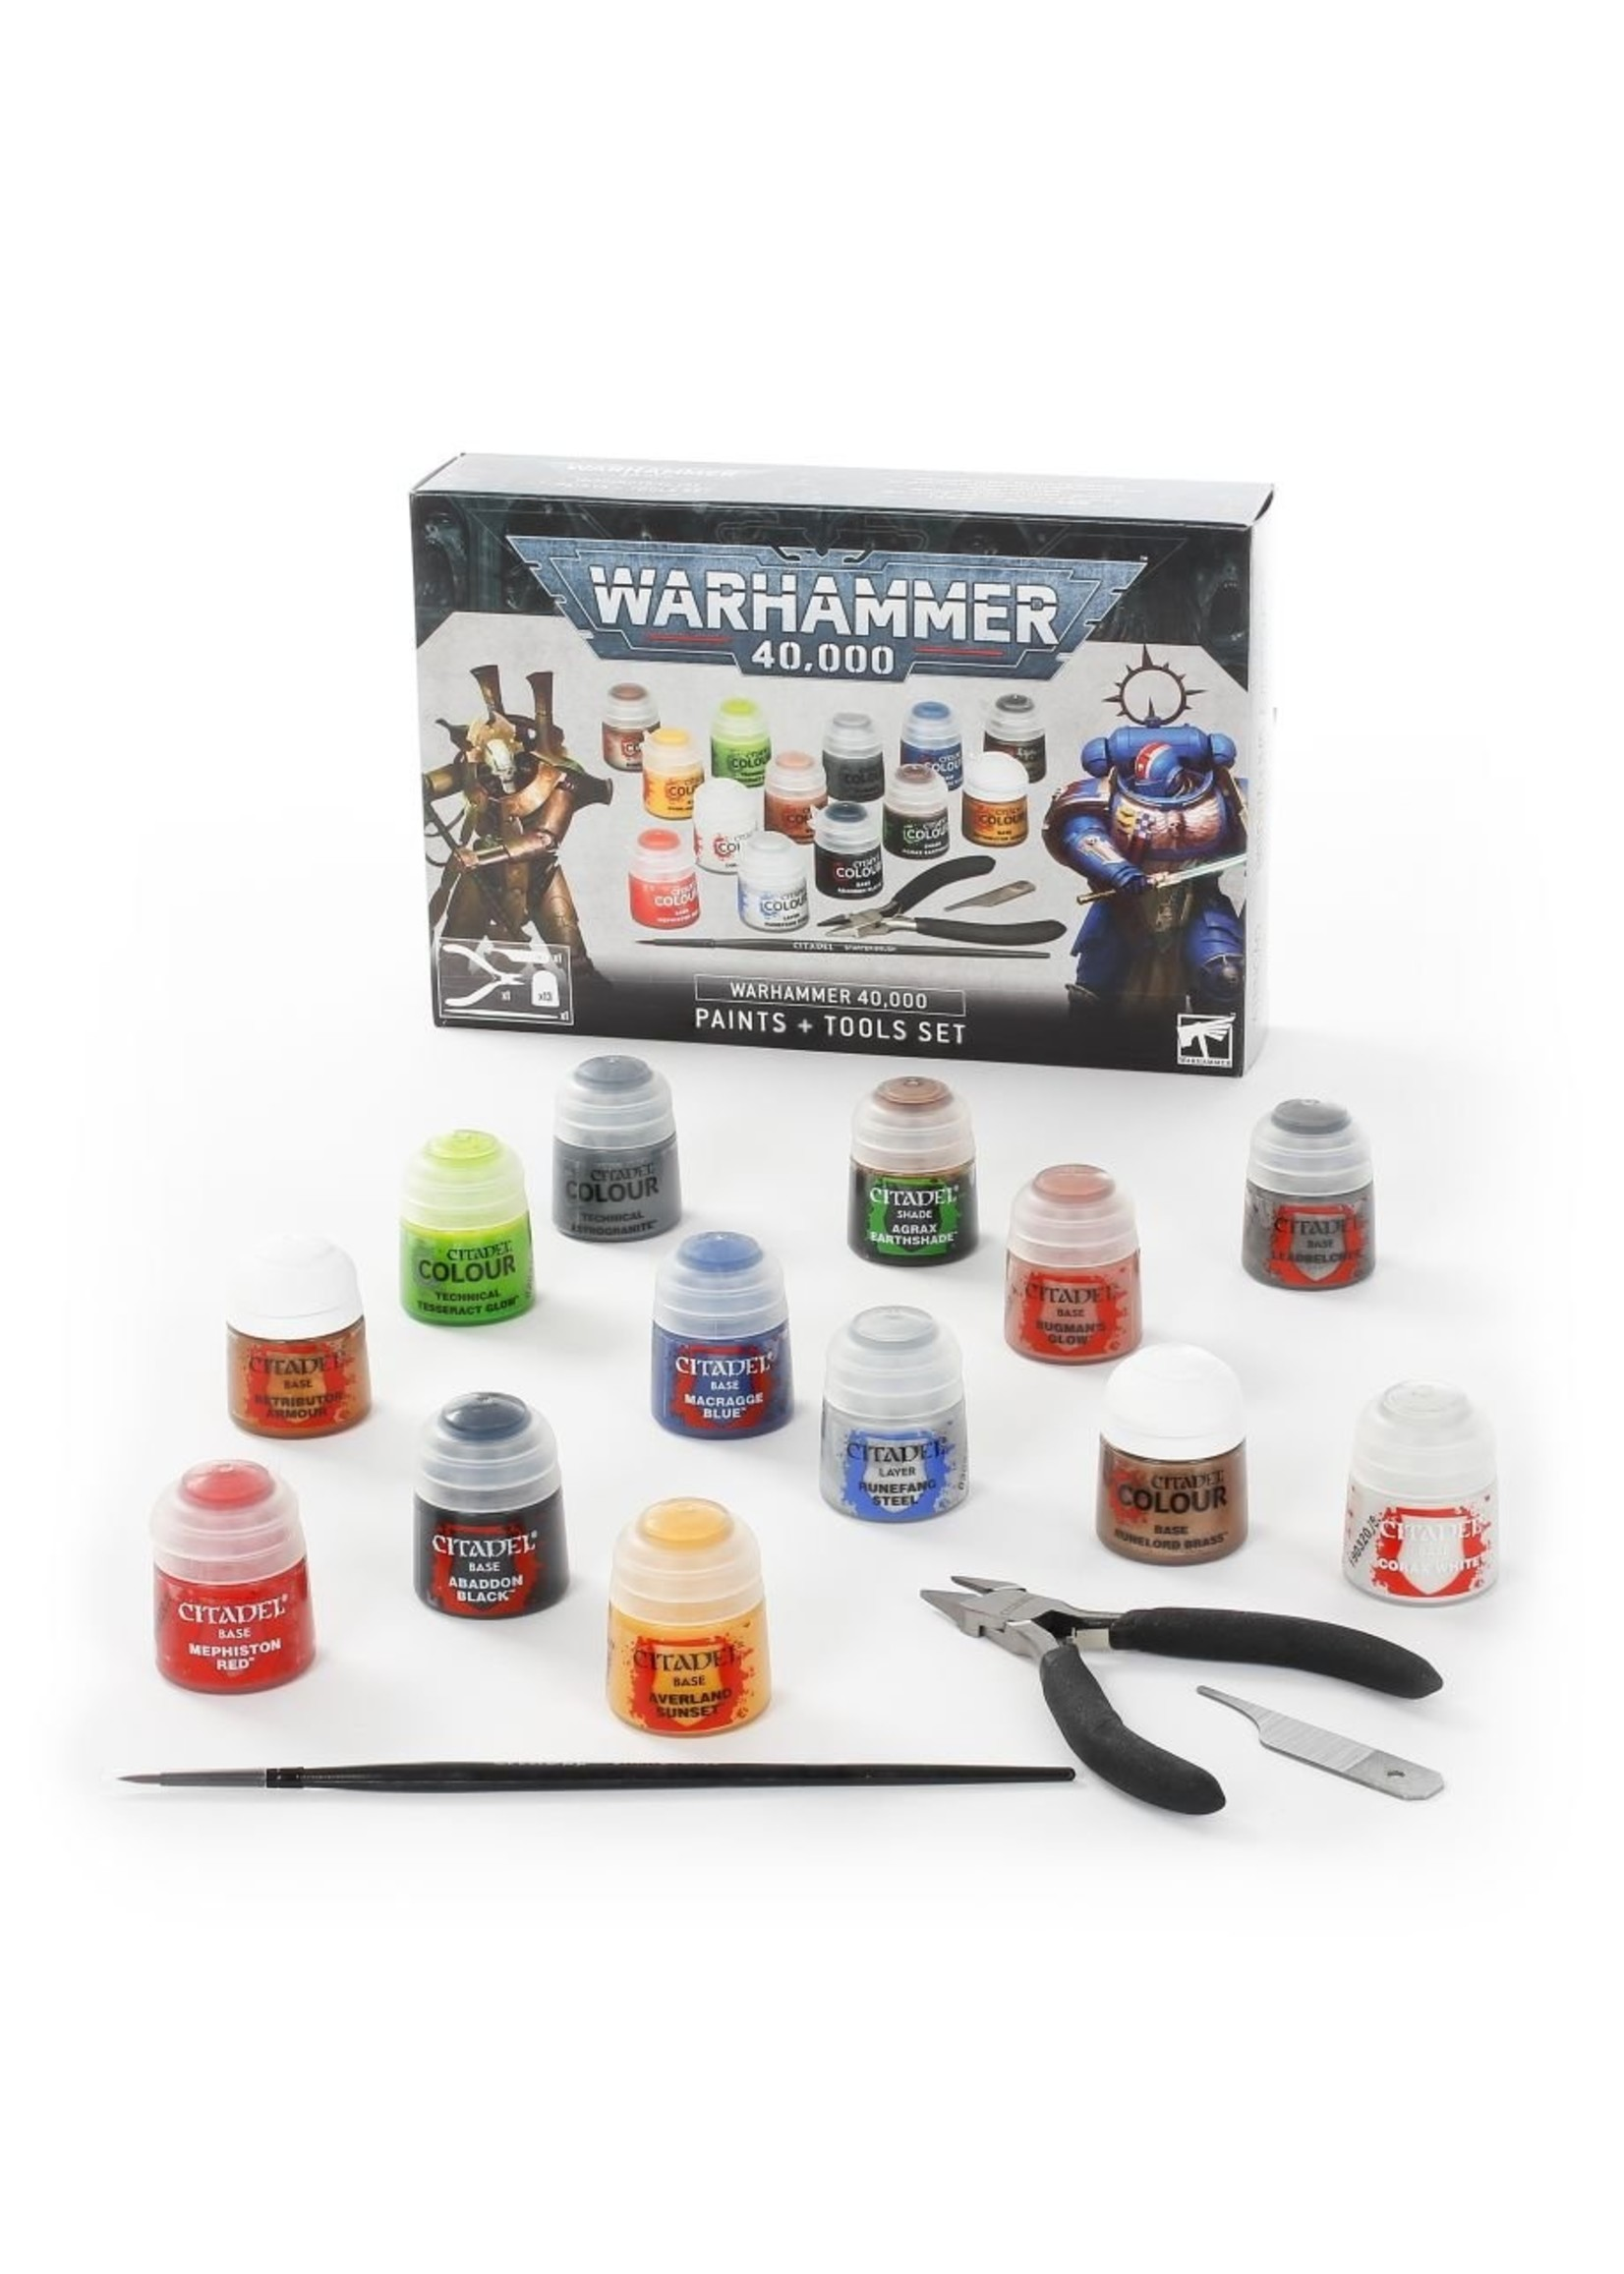 Warhammer 40k: Paints + Tools